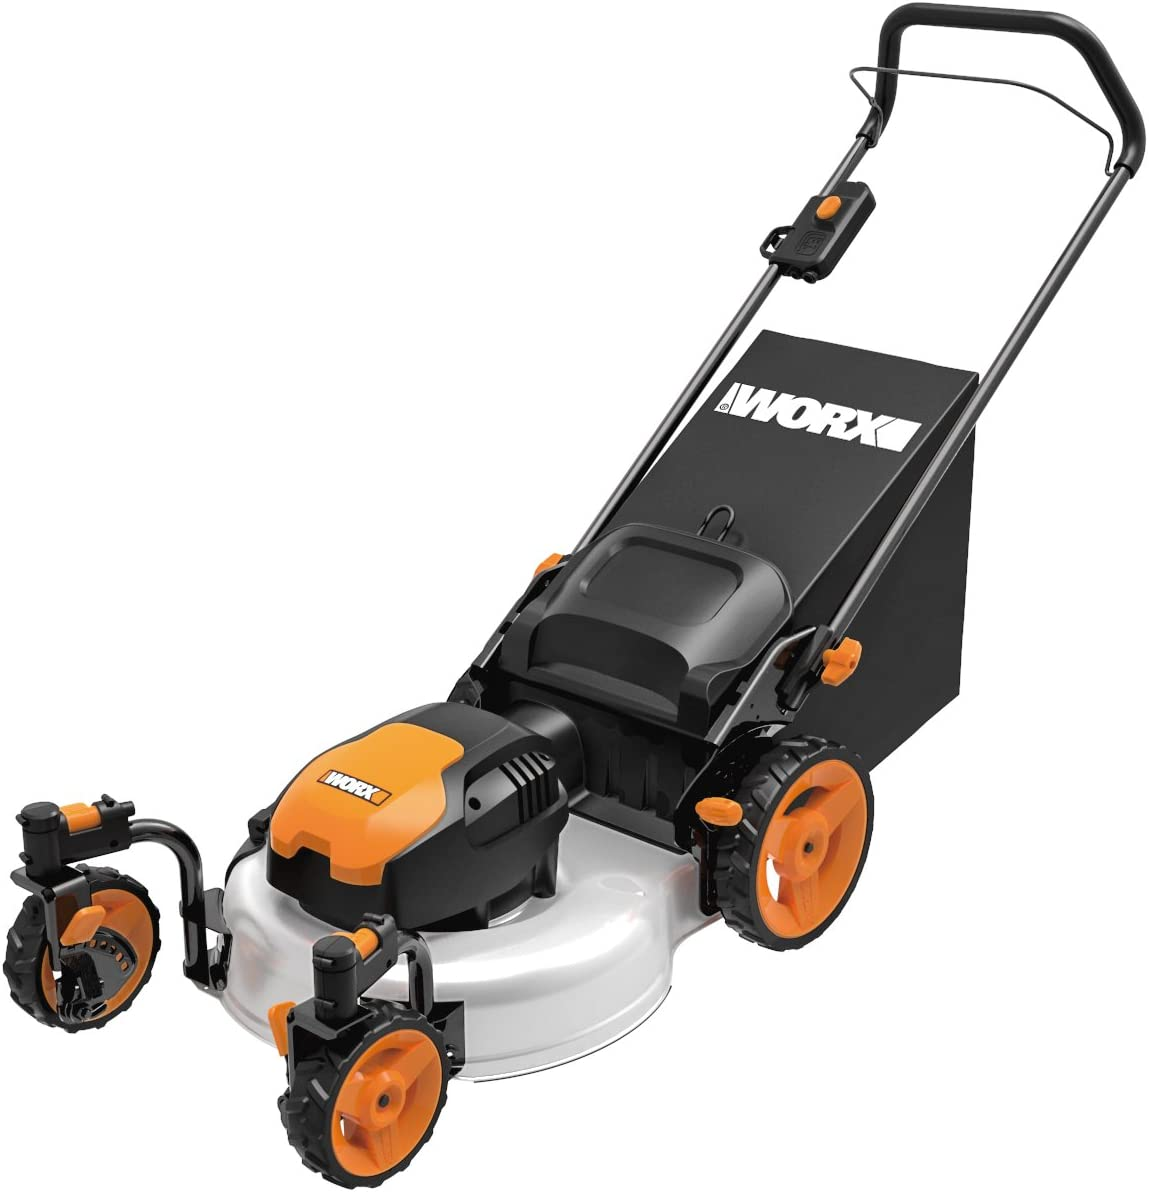 WORX WG719 13 Amp 20 Electric Lawn Mower